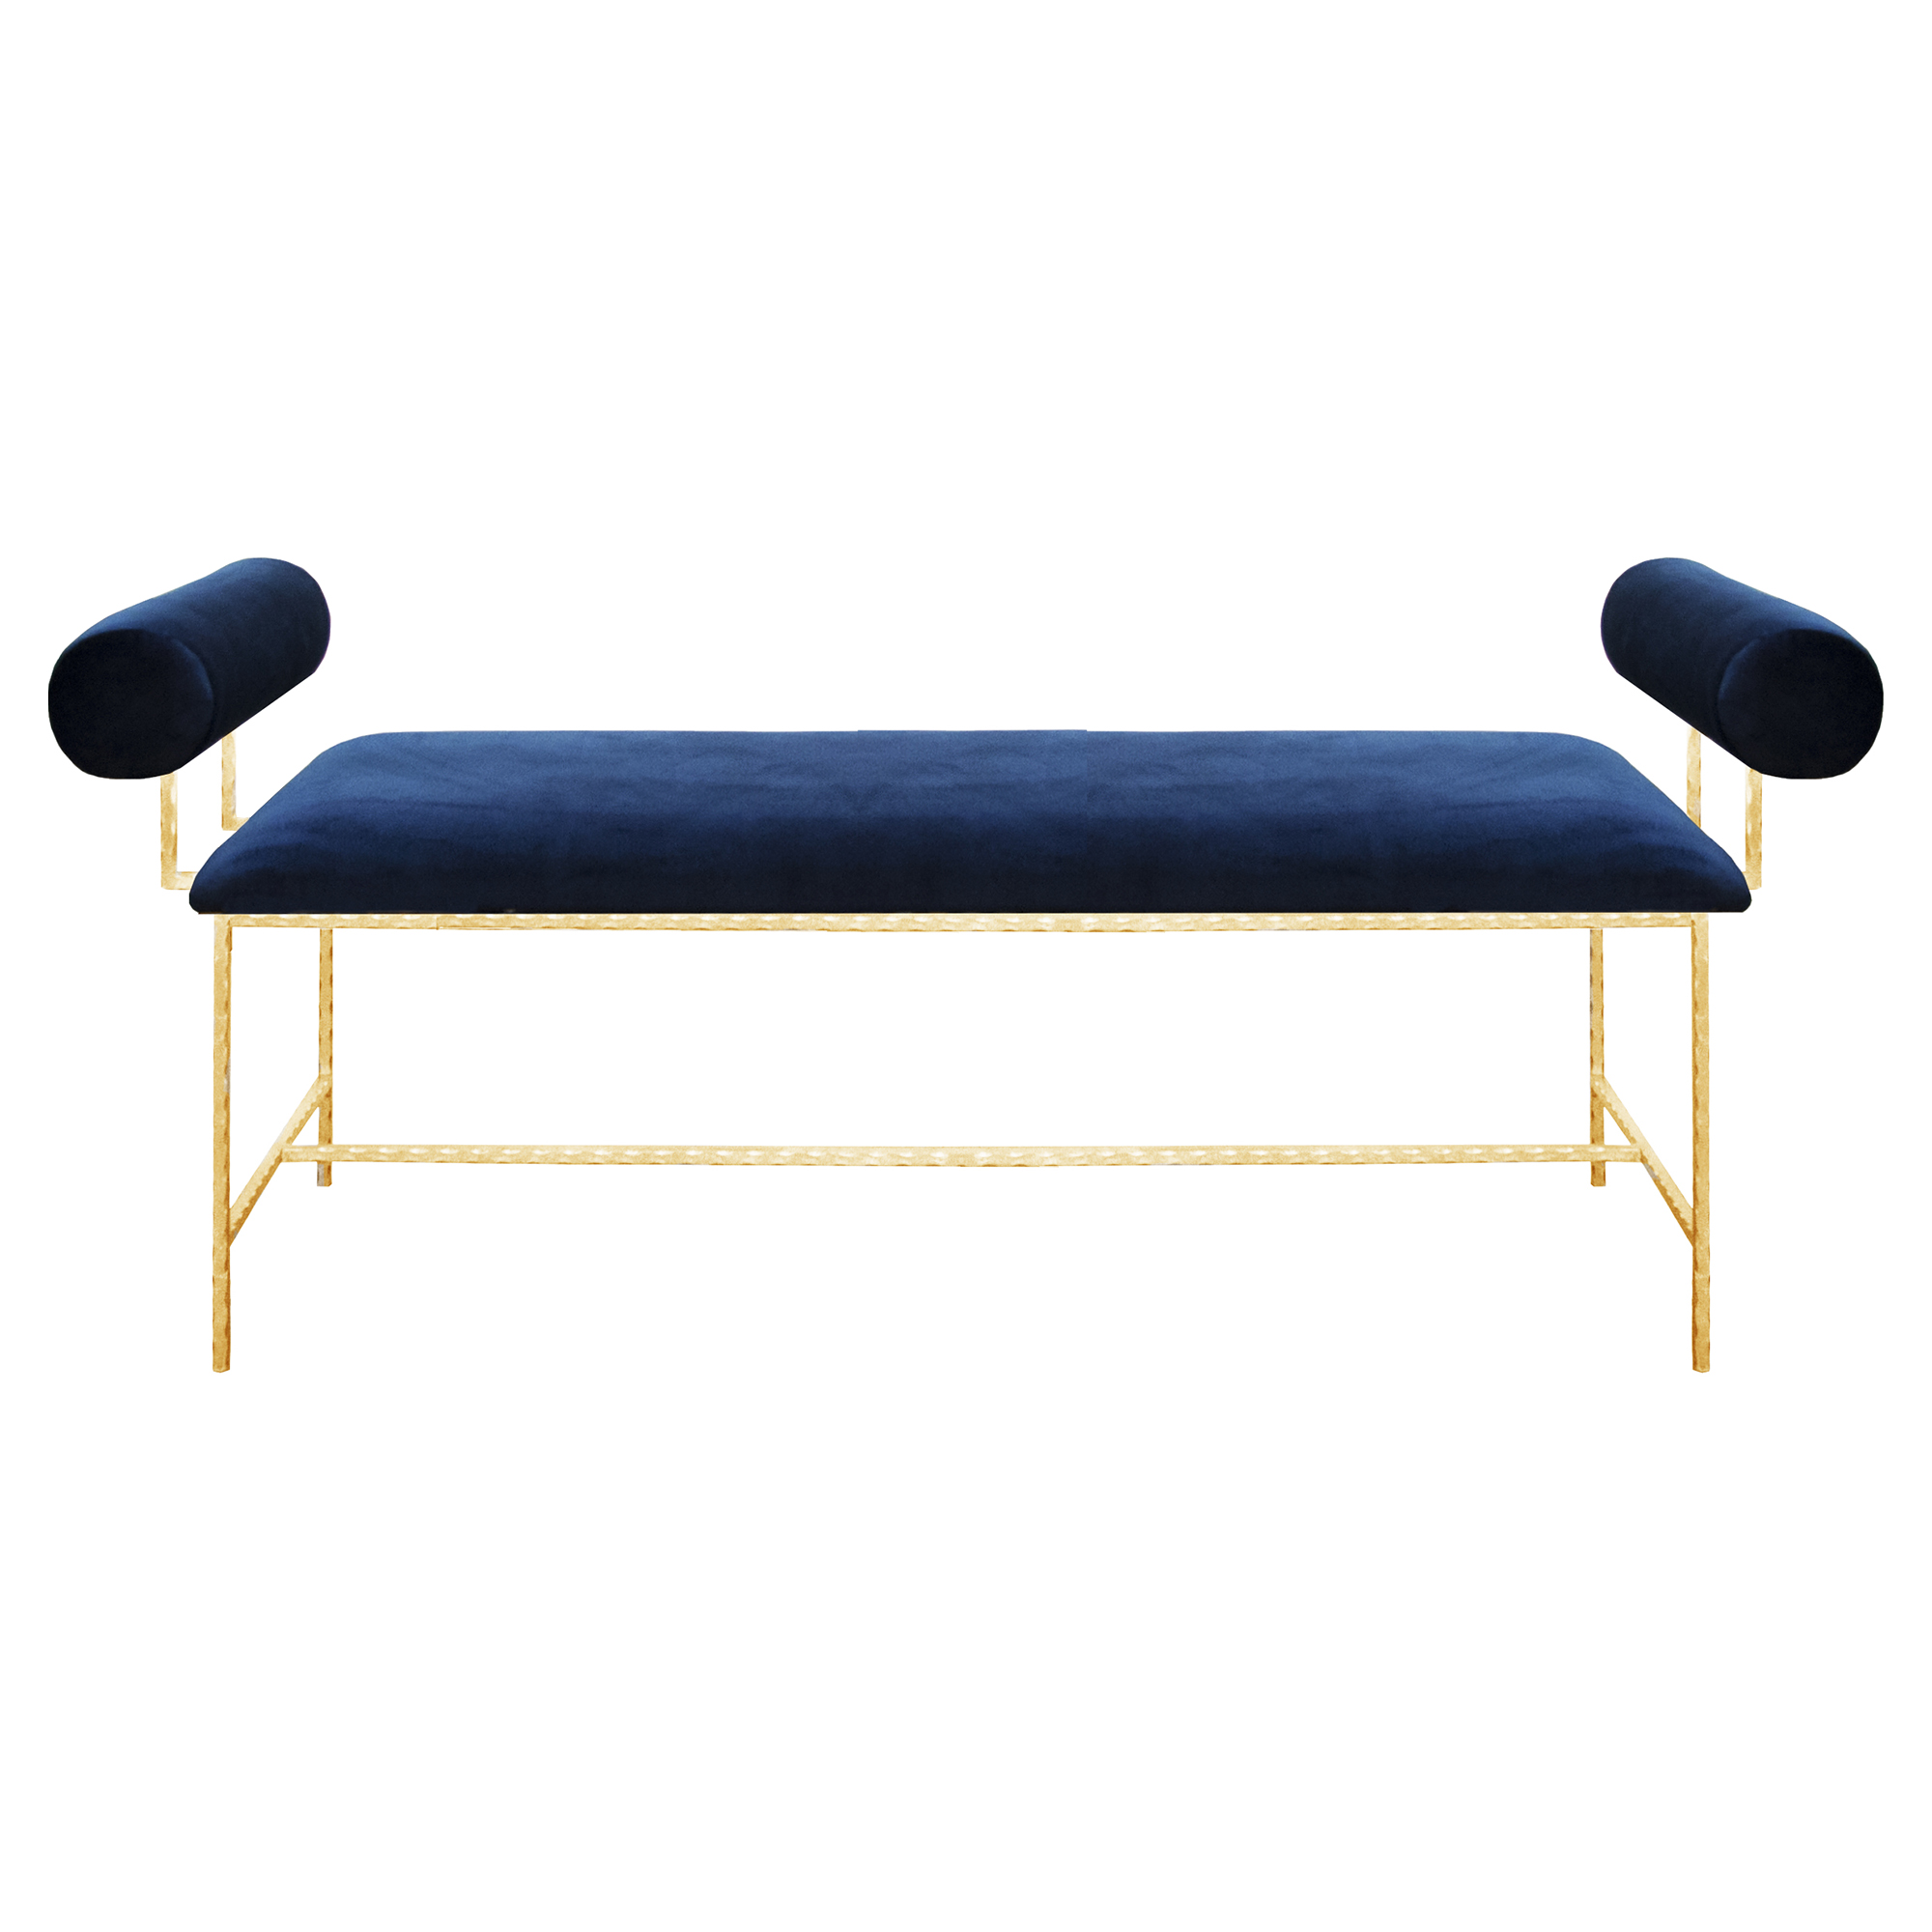 Bilson Modern Bolster Arm Blue Velvet Gold Bench